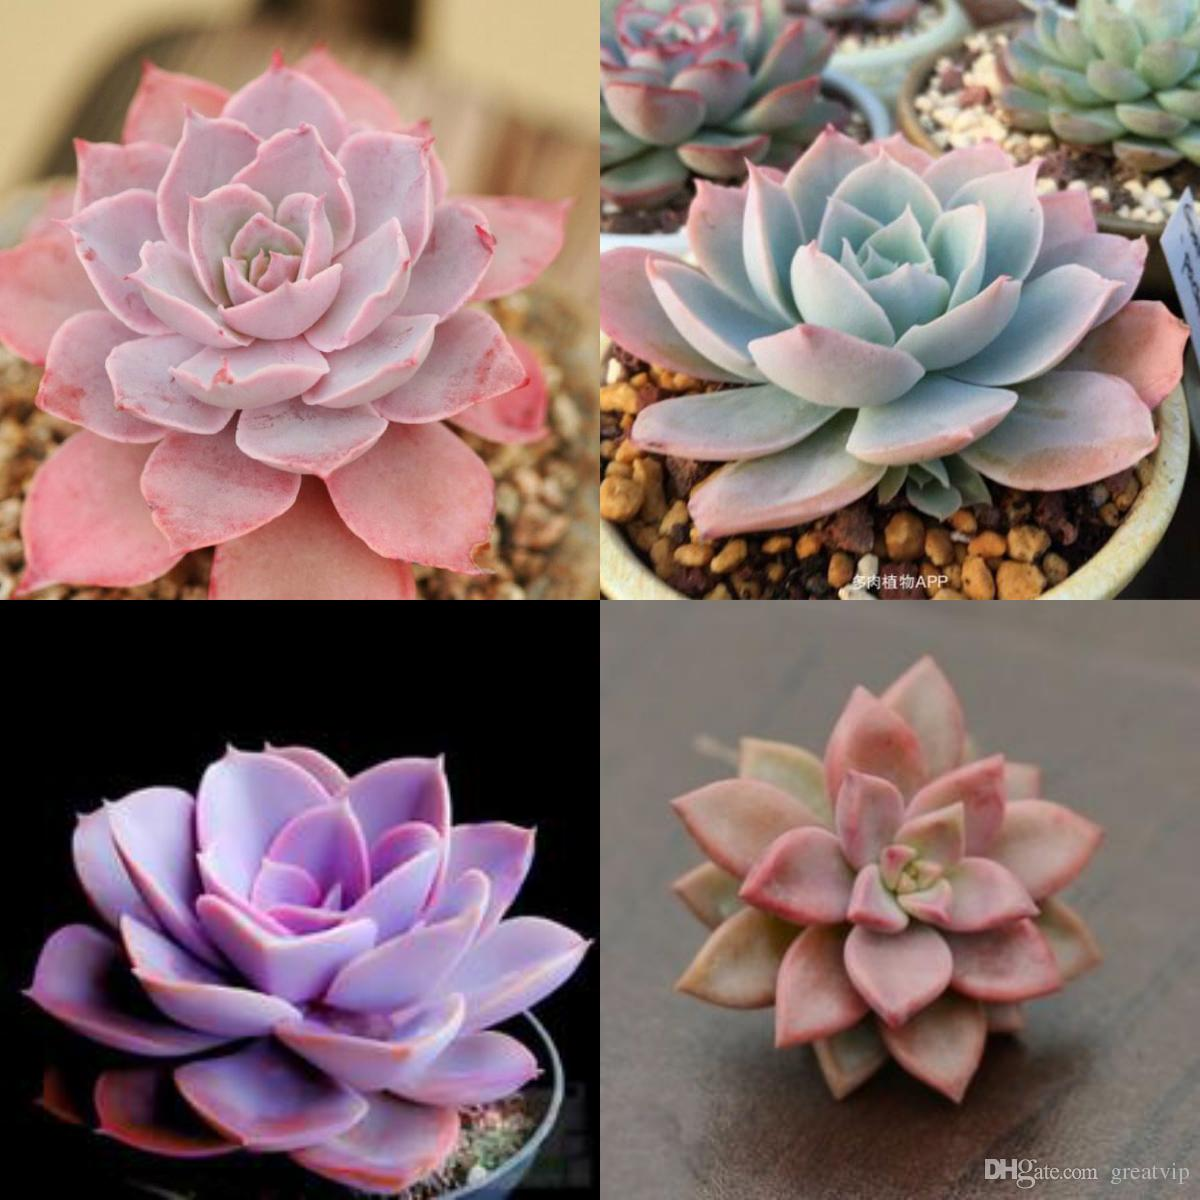 Succulent plants flower seeds cheap lucky pink plants seed great cheap lucky pink plants seed great bonsai plant perennial bloom balcony garden plants yard wedding decorations flowers for wedding flowers free delivery izmirmasajfo